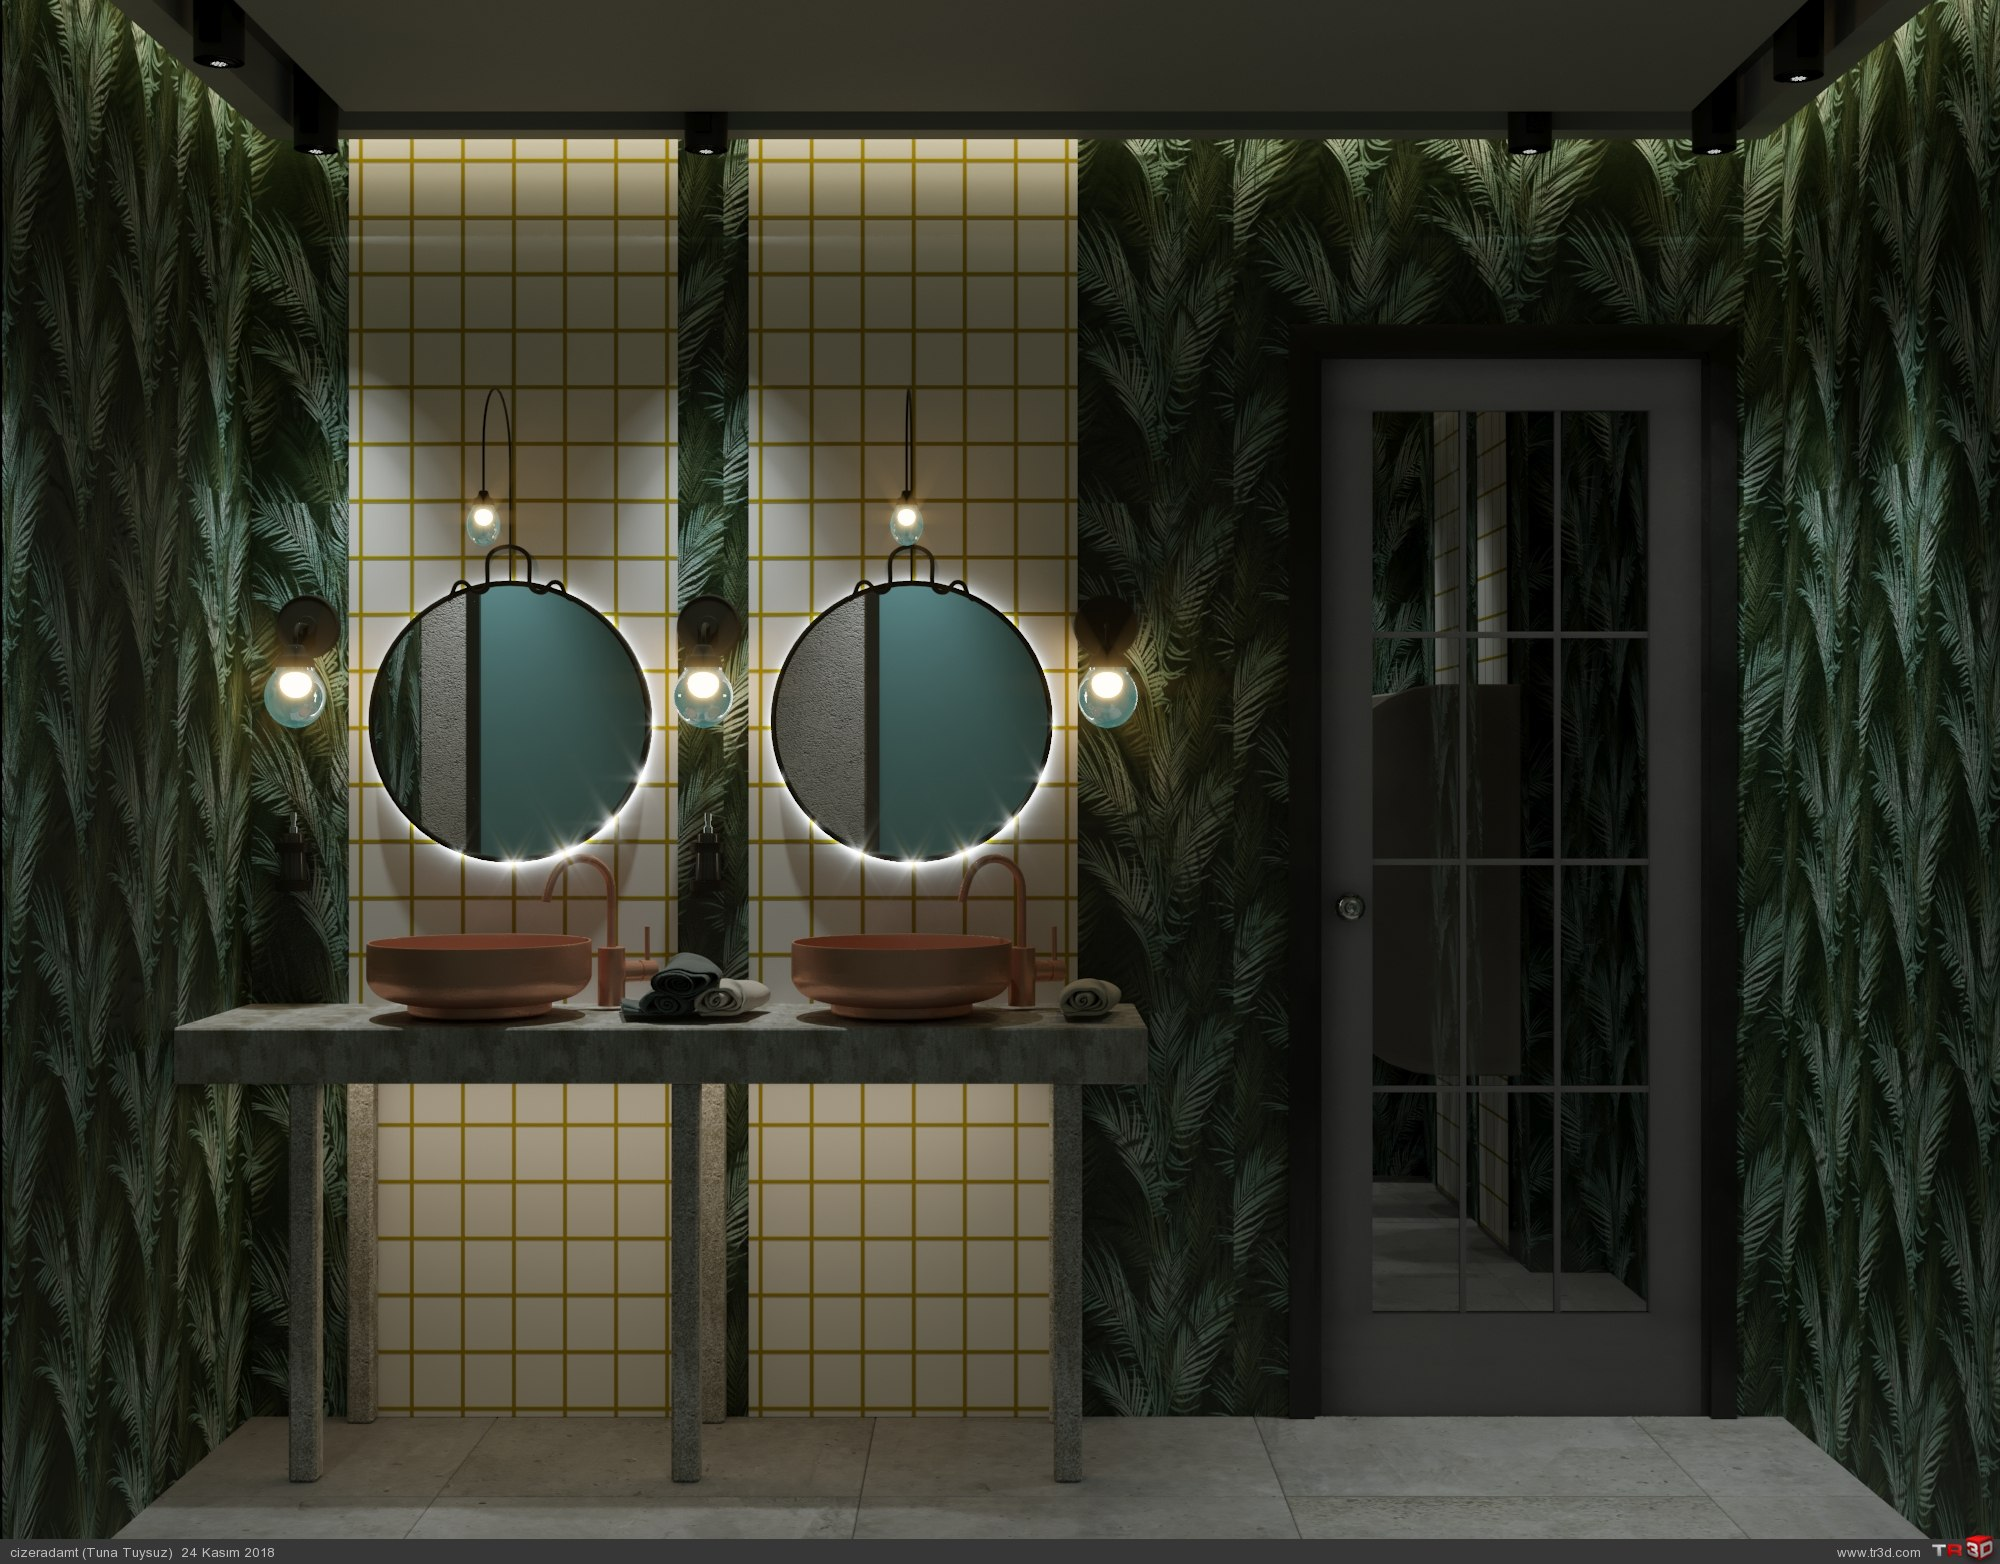 Ankara Wc Design 1